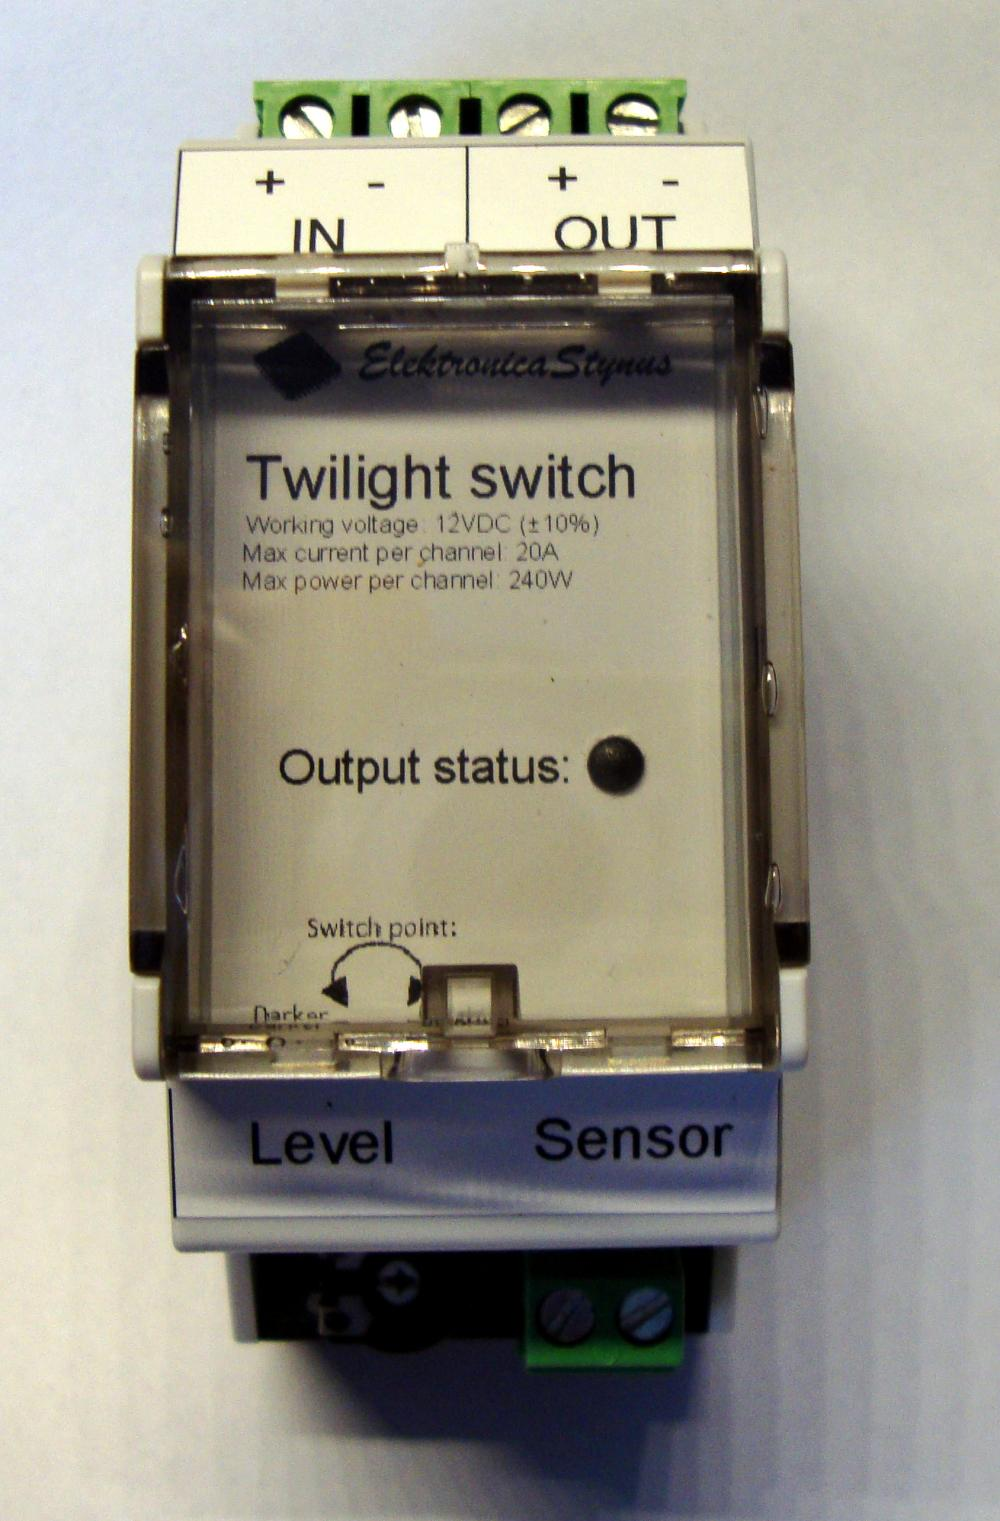 Twilight switch (DIN rail version)